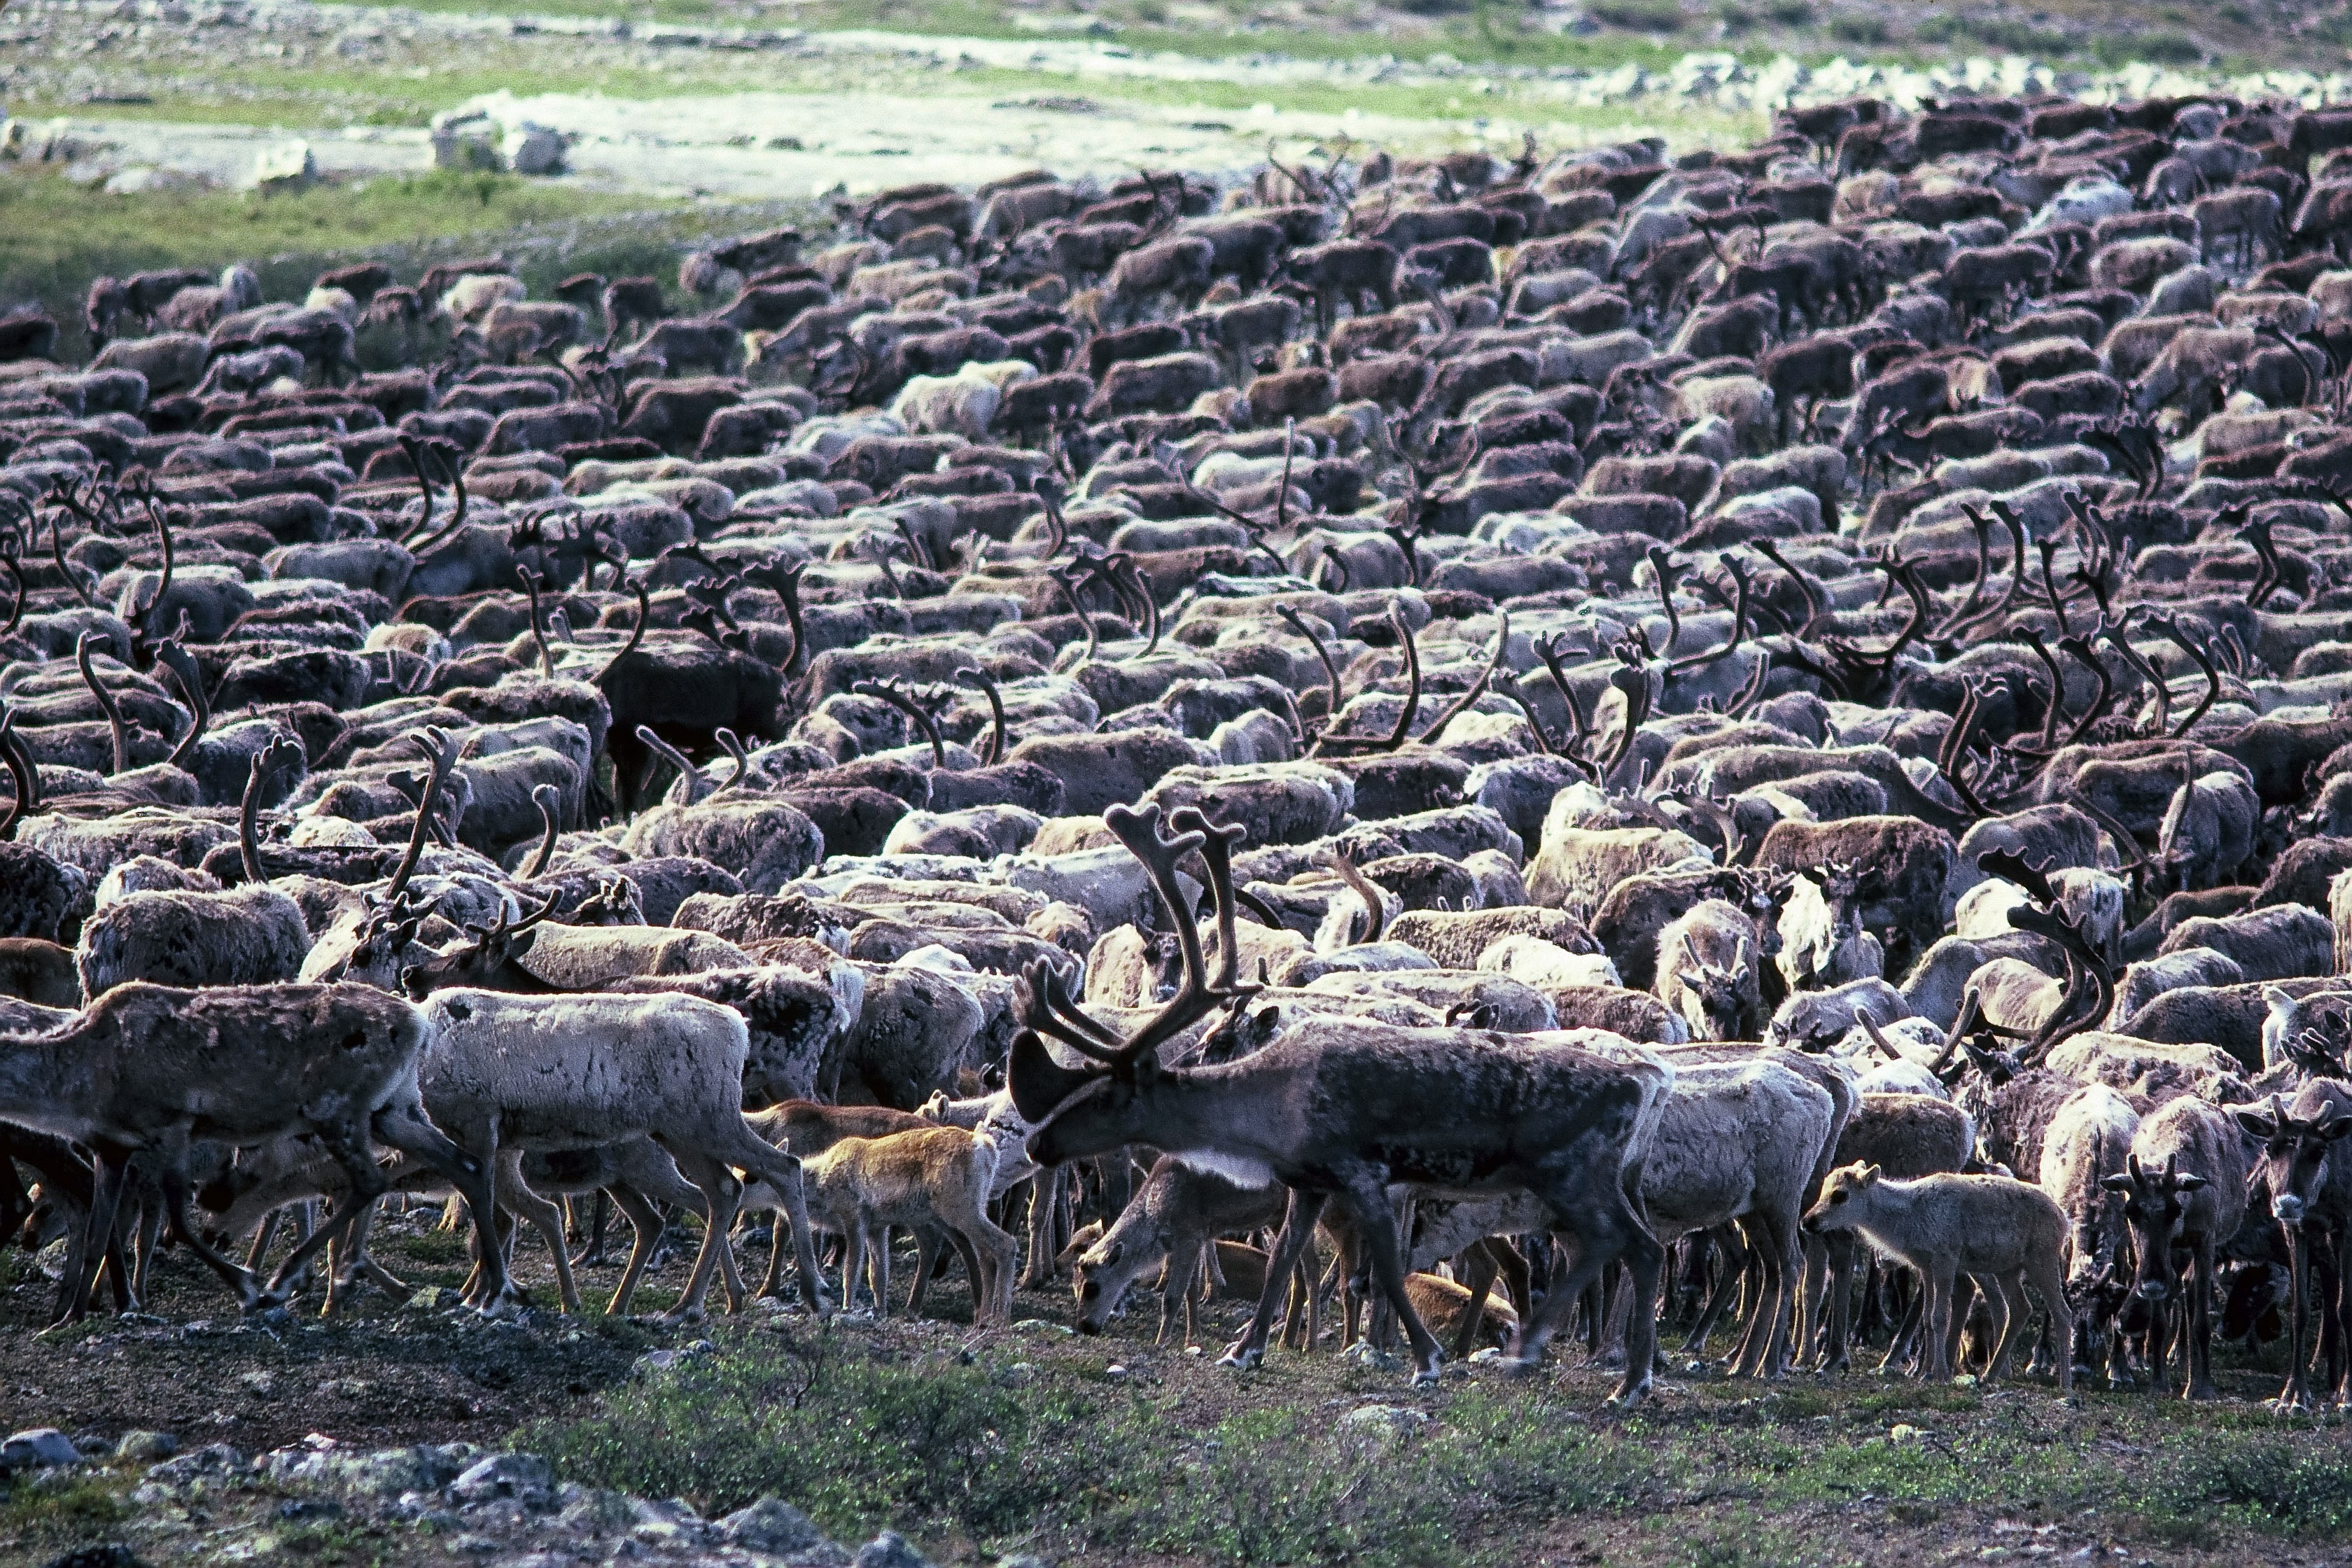 A part of the Beverly Caribou herd in late July 1985 on the upper Thelon River. The caribou are packed together to minimize insect harassment. (Photo by Alex Hall)